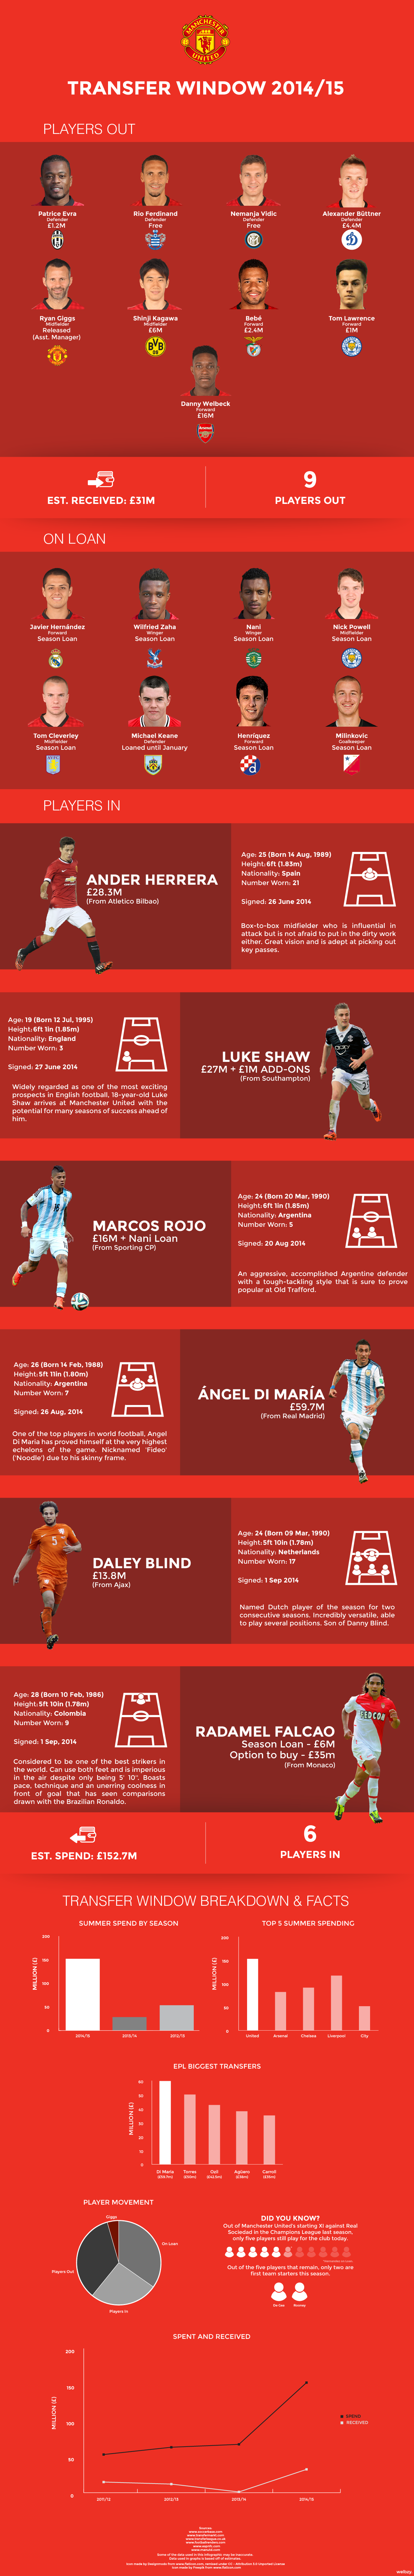 man utd transfer window infographic